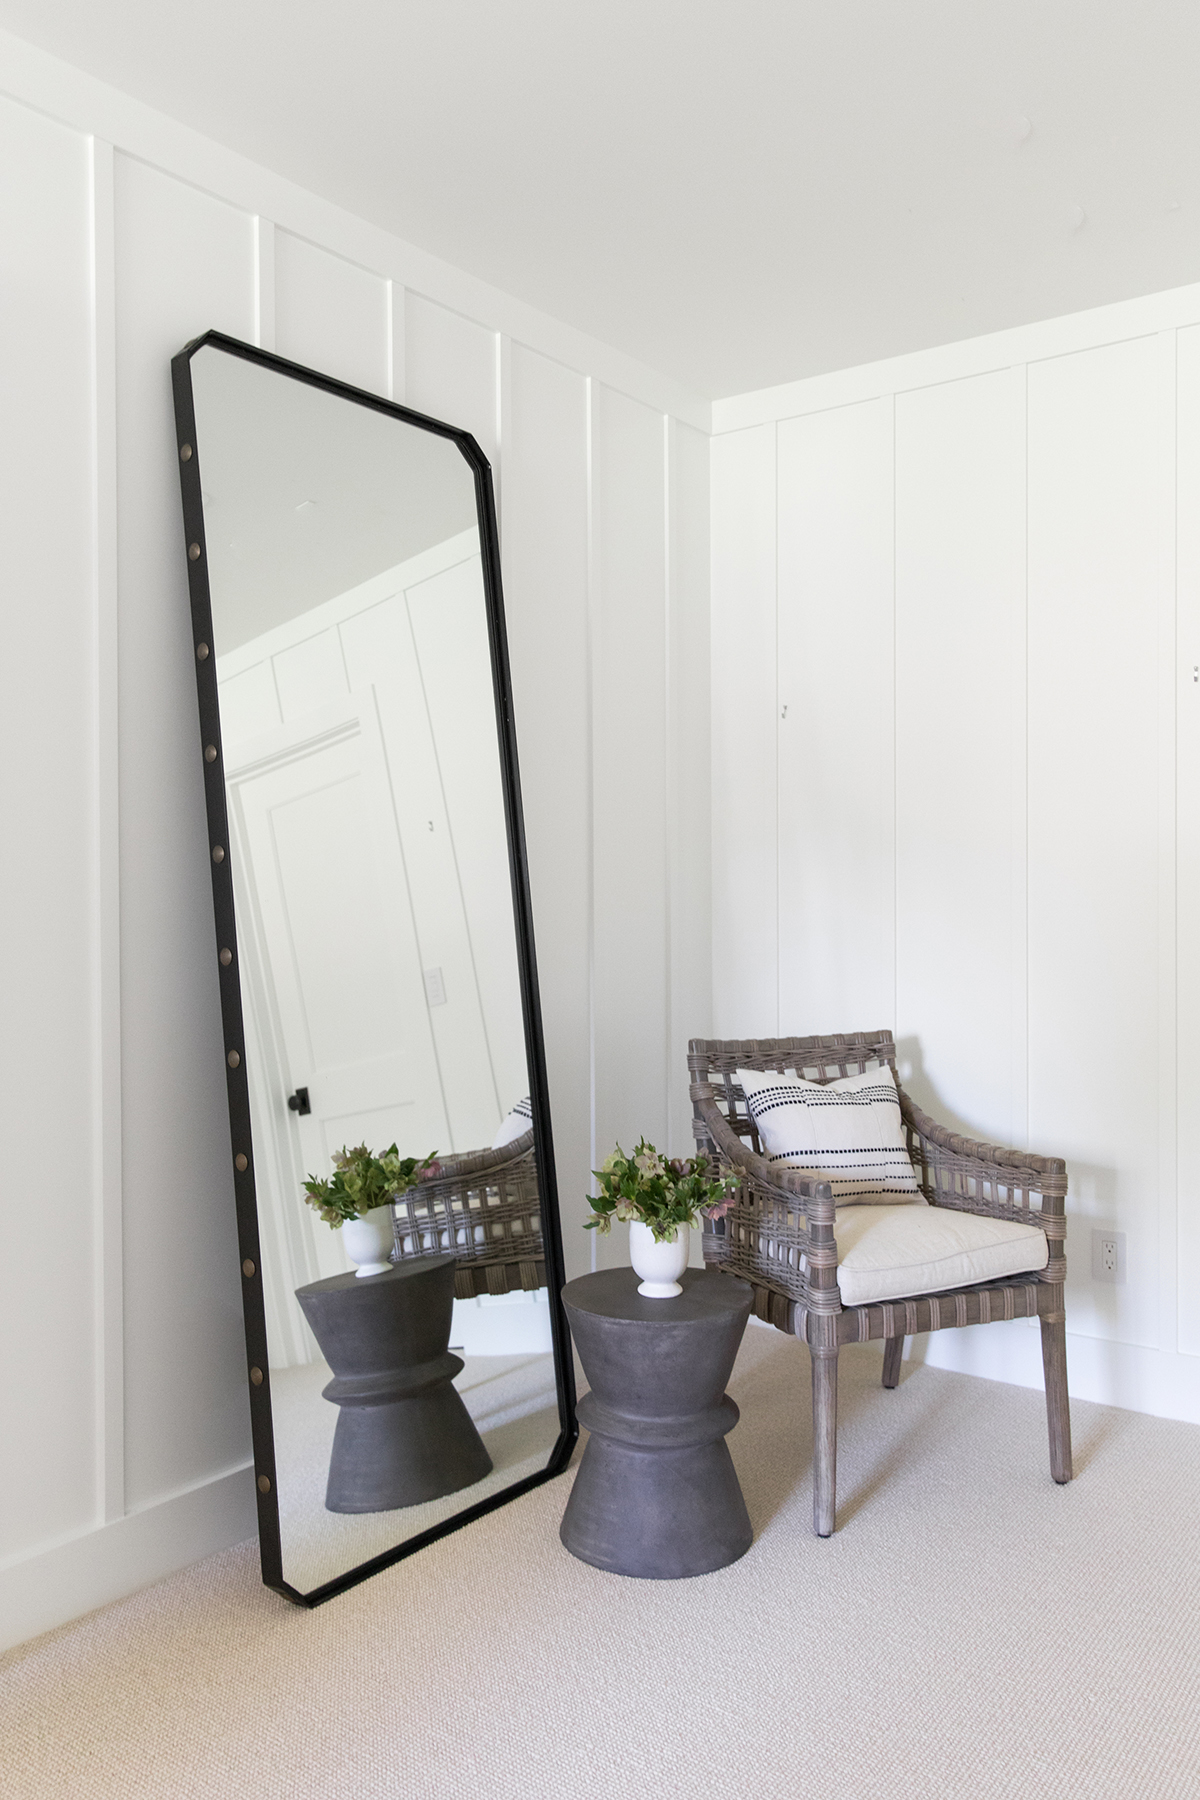 Natural, textured bedroom with floor length mirror and fort batten wall detail | Studio McGee Blog